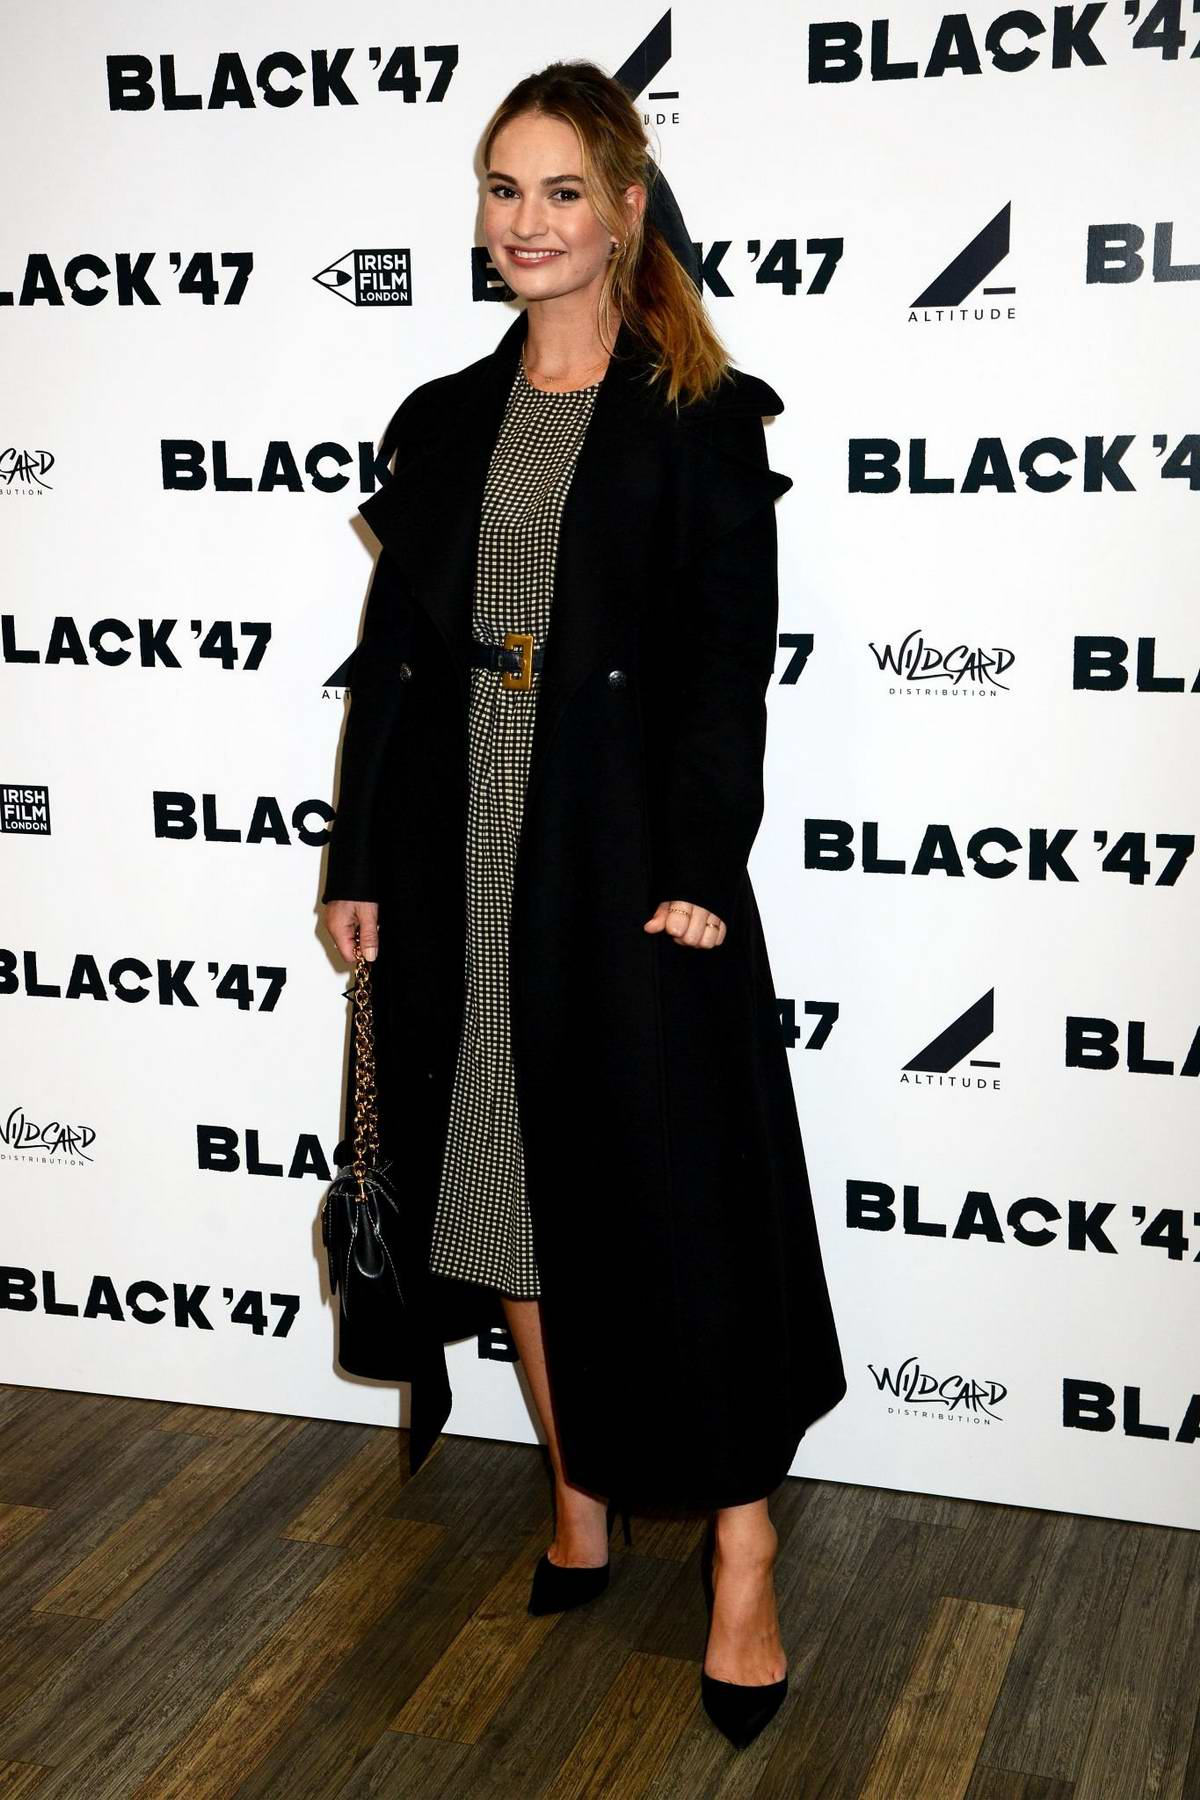 Lily James attends a special gala screening of Black '47' in London, UK